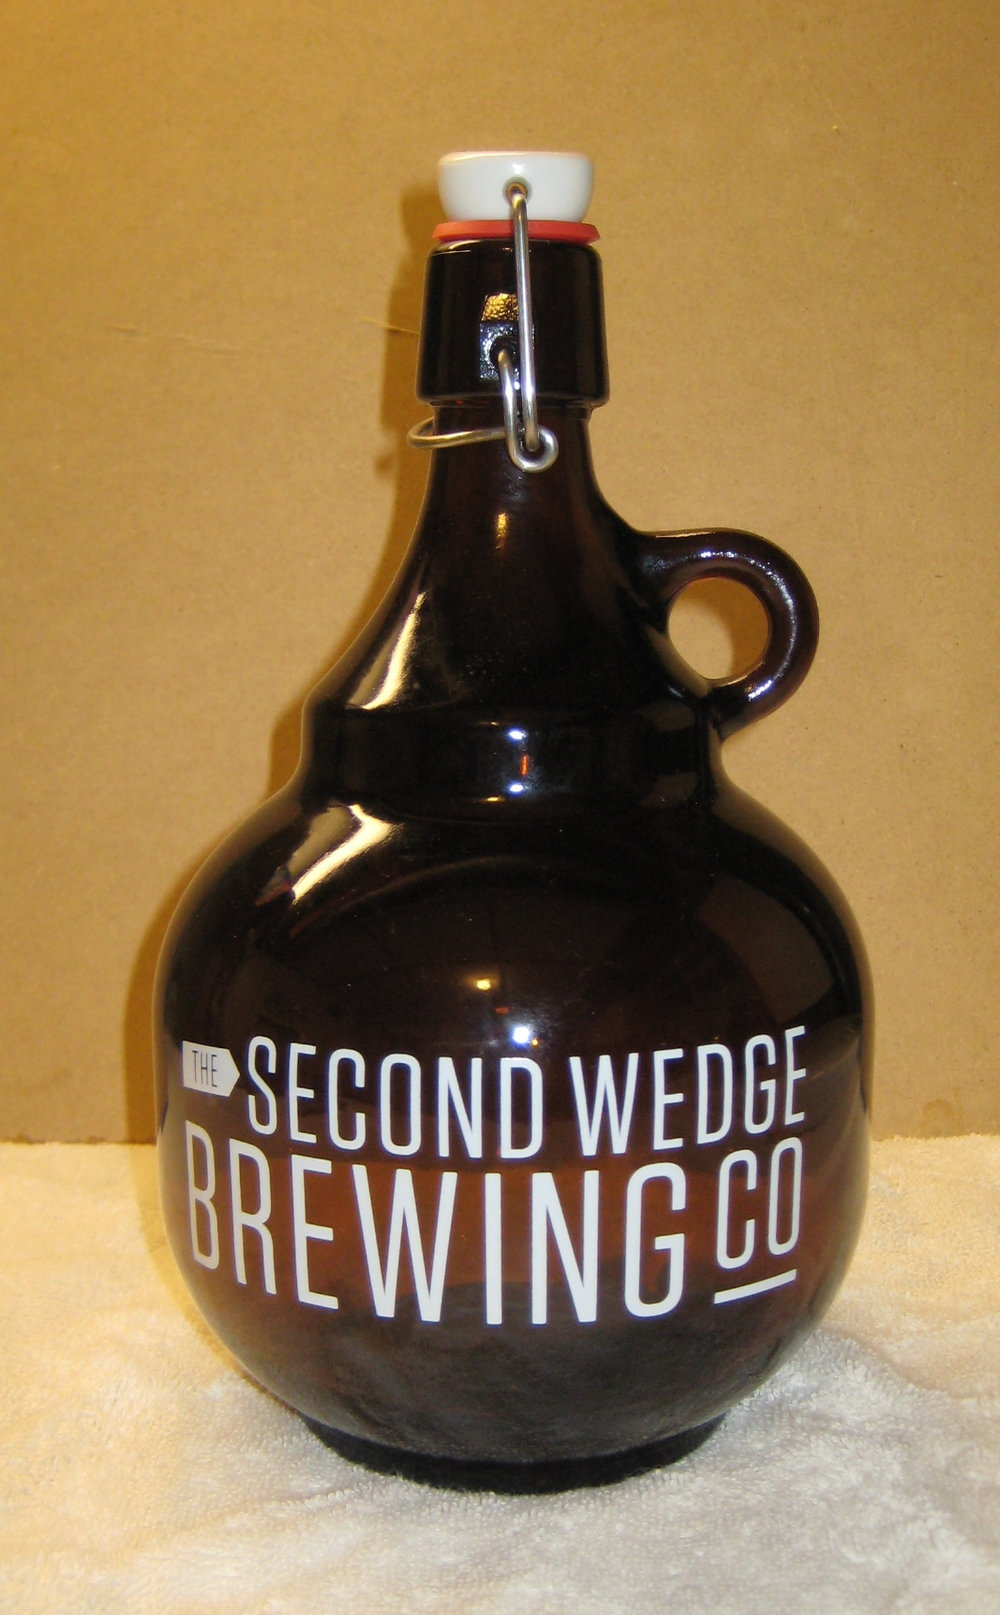 GR - The Second Wedge Brewing